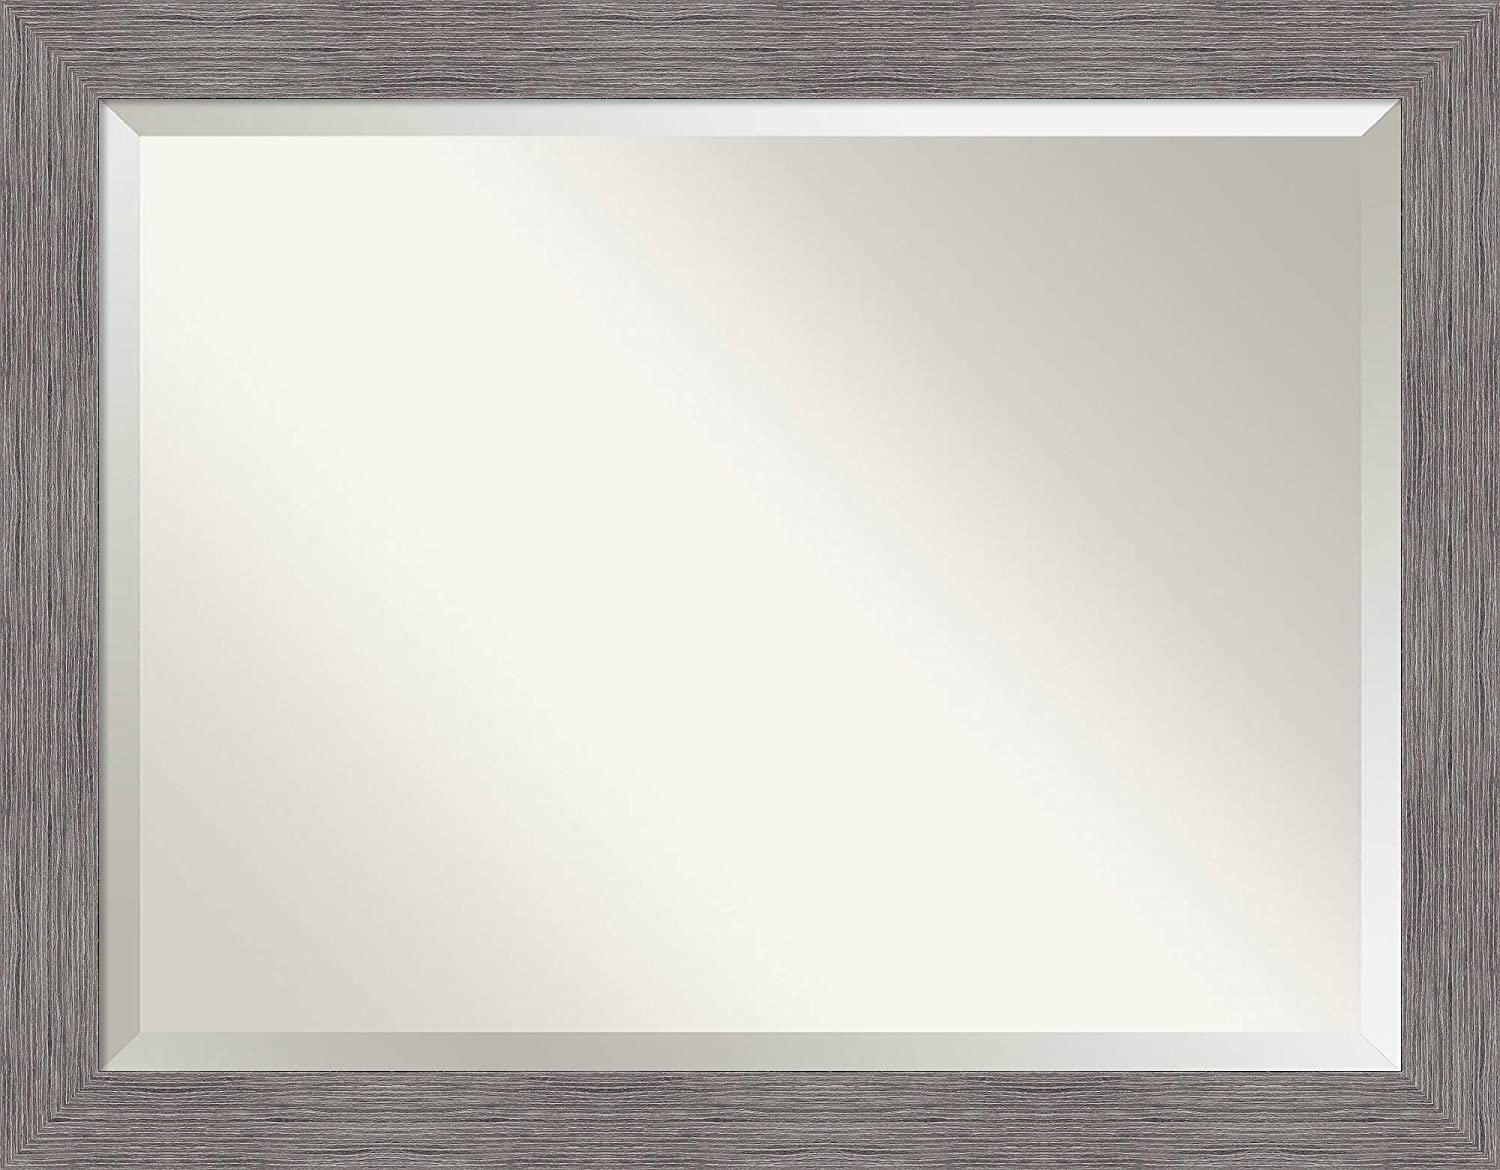 Amanti 5 popular Art Spring new work one after another Framed Vanity Mirror for Wall Bathroom Pi Mirrors